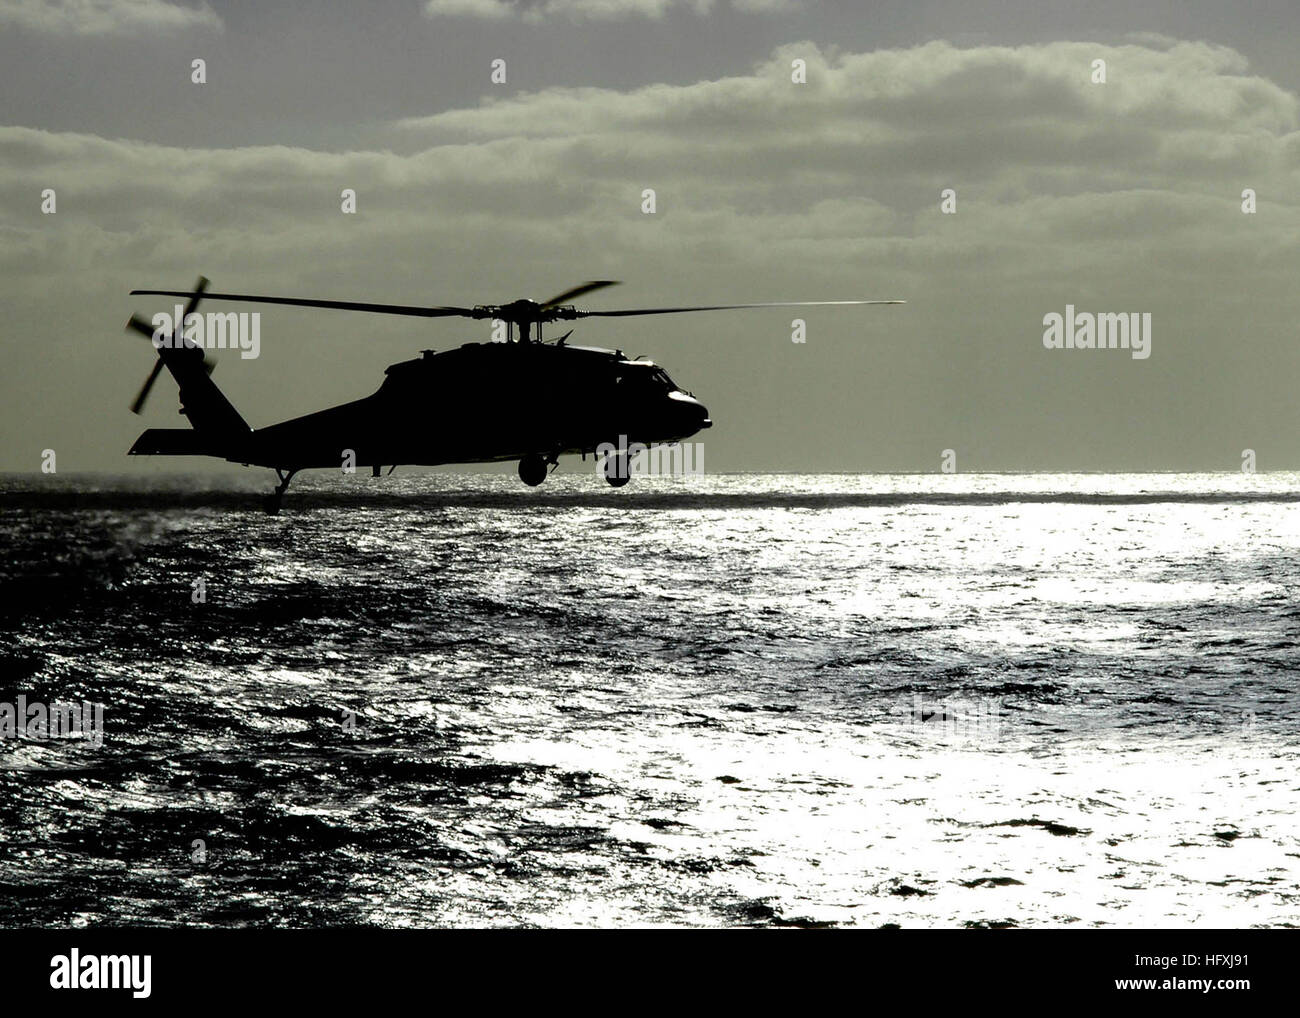 060115-N-9898L-063  Pacific Ocean (Jan. 15, 2005) - An MH-60S Seahawk helicopter assigned to the Helicopter Squadron - Stock Image